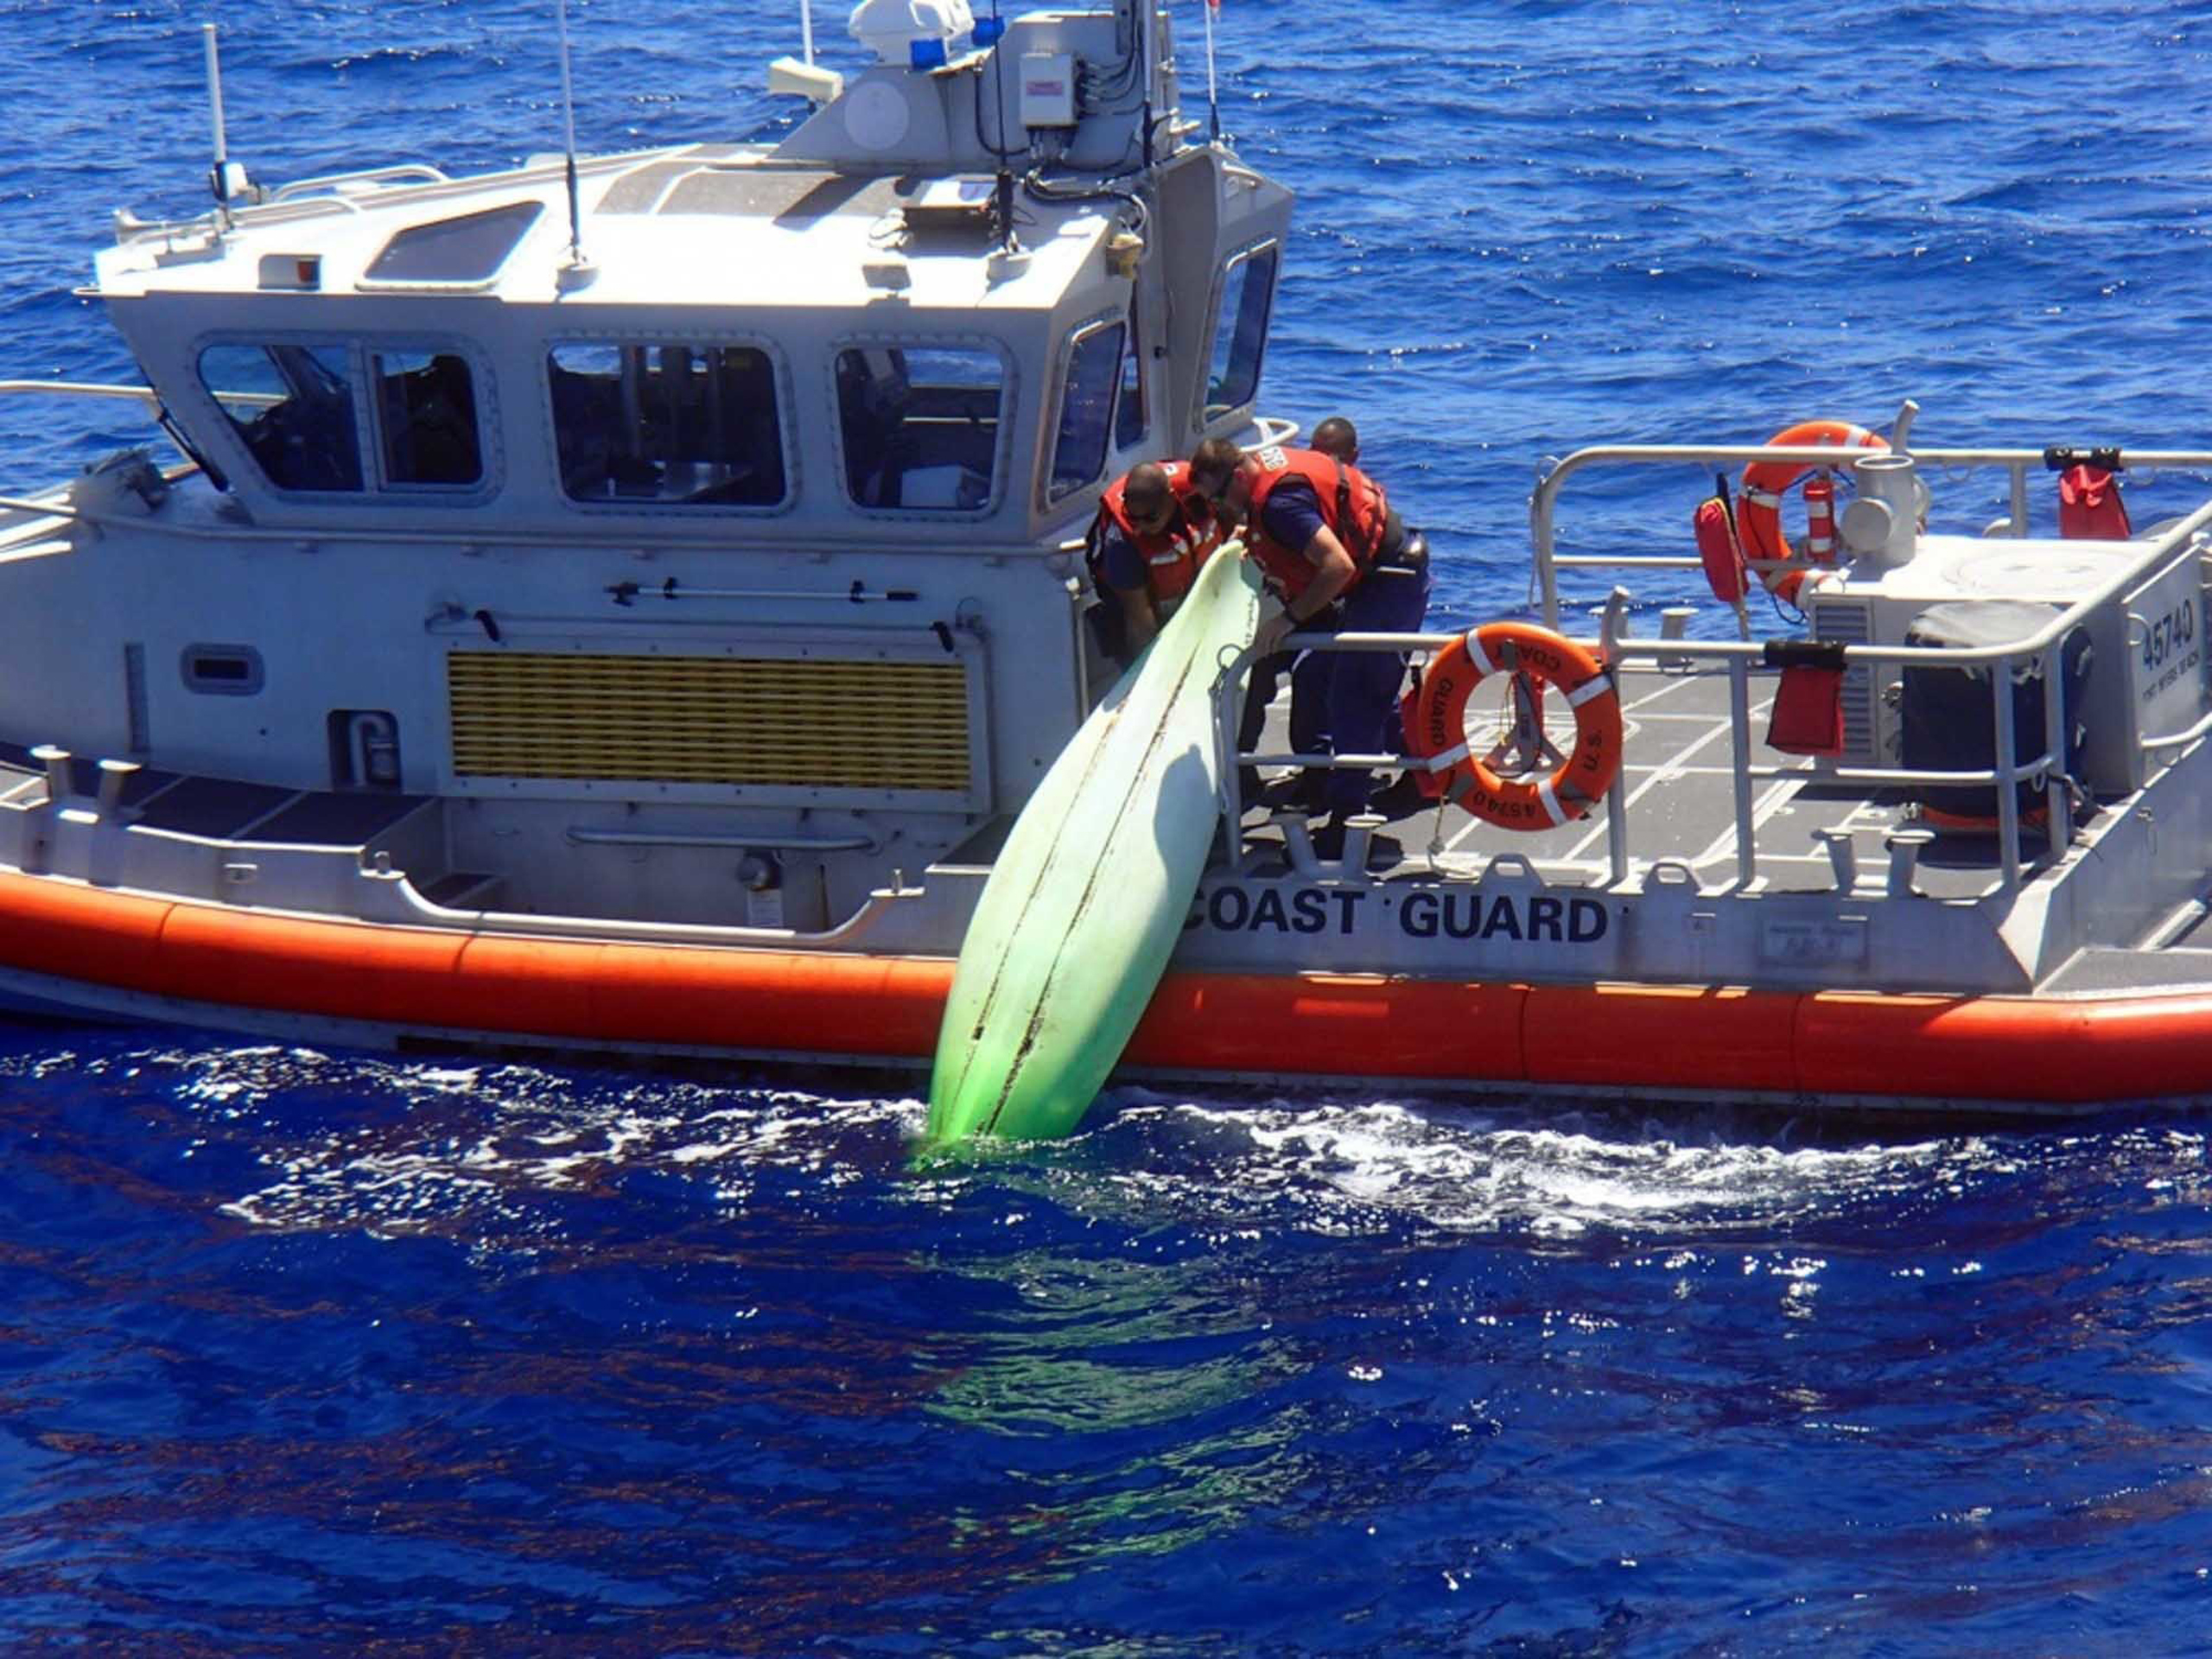 A kayak recovered within a debris field off the coast of Sanibel, Fla., during the search for the missing family on June 22, 2016.